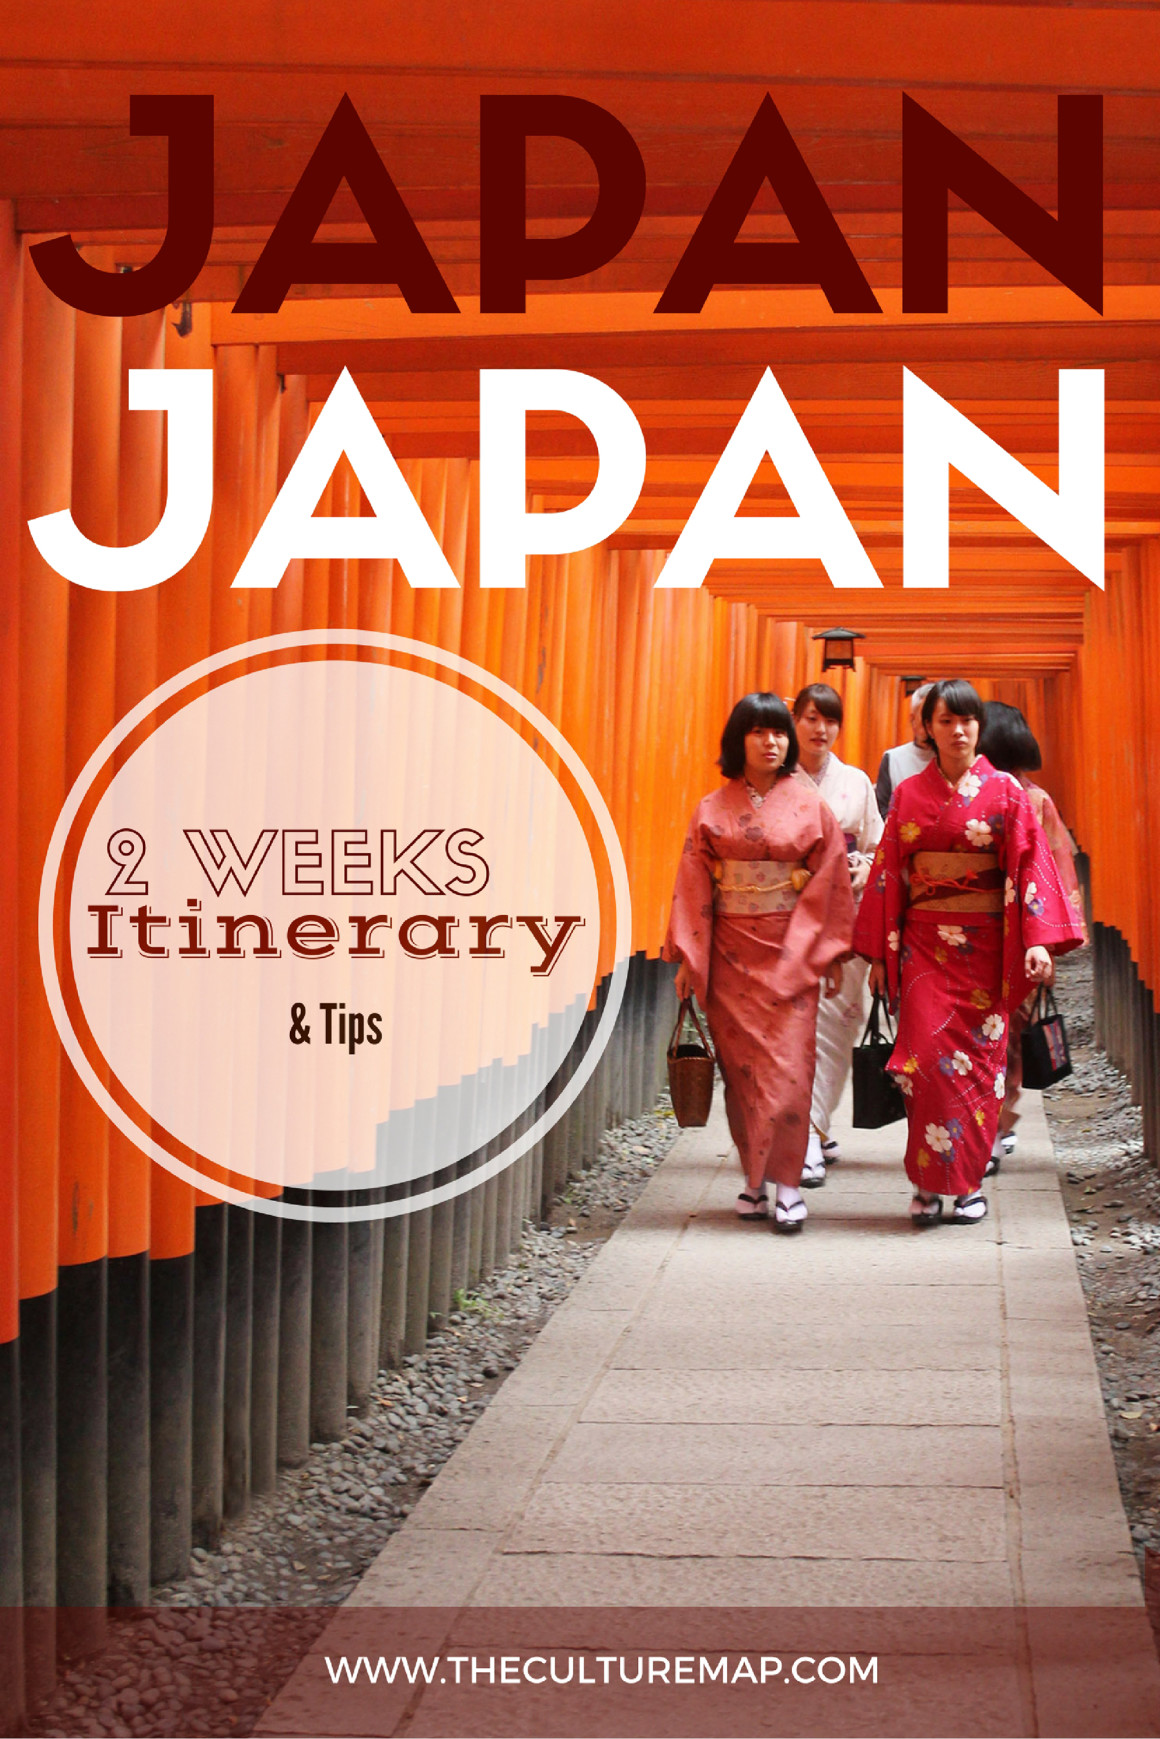 Exploring Japan in 2 weeks - travel itinerary packed with tips, recommendations and photos